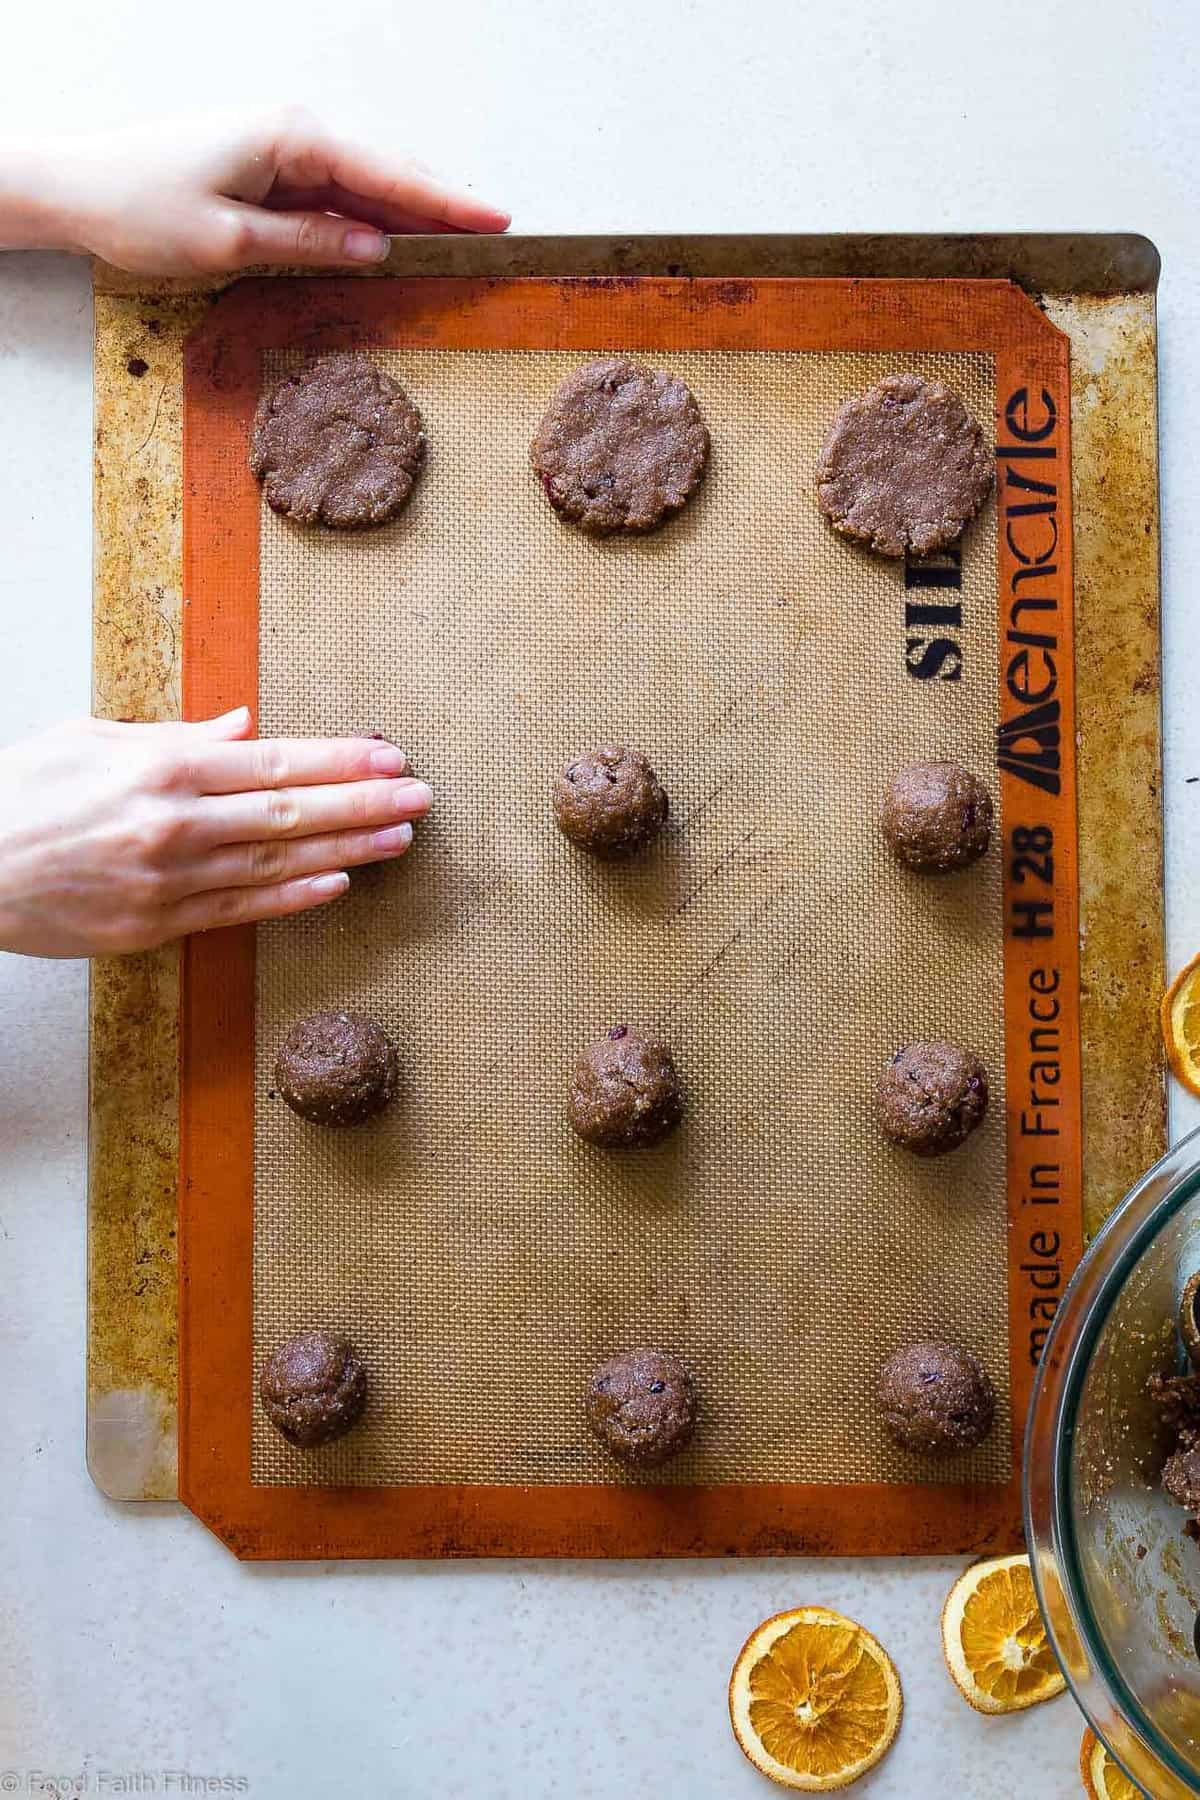 Orange Cardamom Paleo Almond Butter Cookies - SO crispy on the outside, chewy on the inside and loaded with festive flavor! You will never believe these are healthy, vegan and gluten free too! | #Foodfaithfitness |